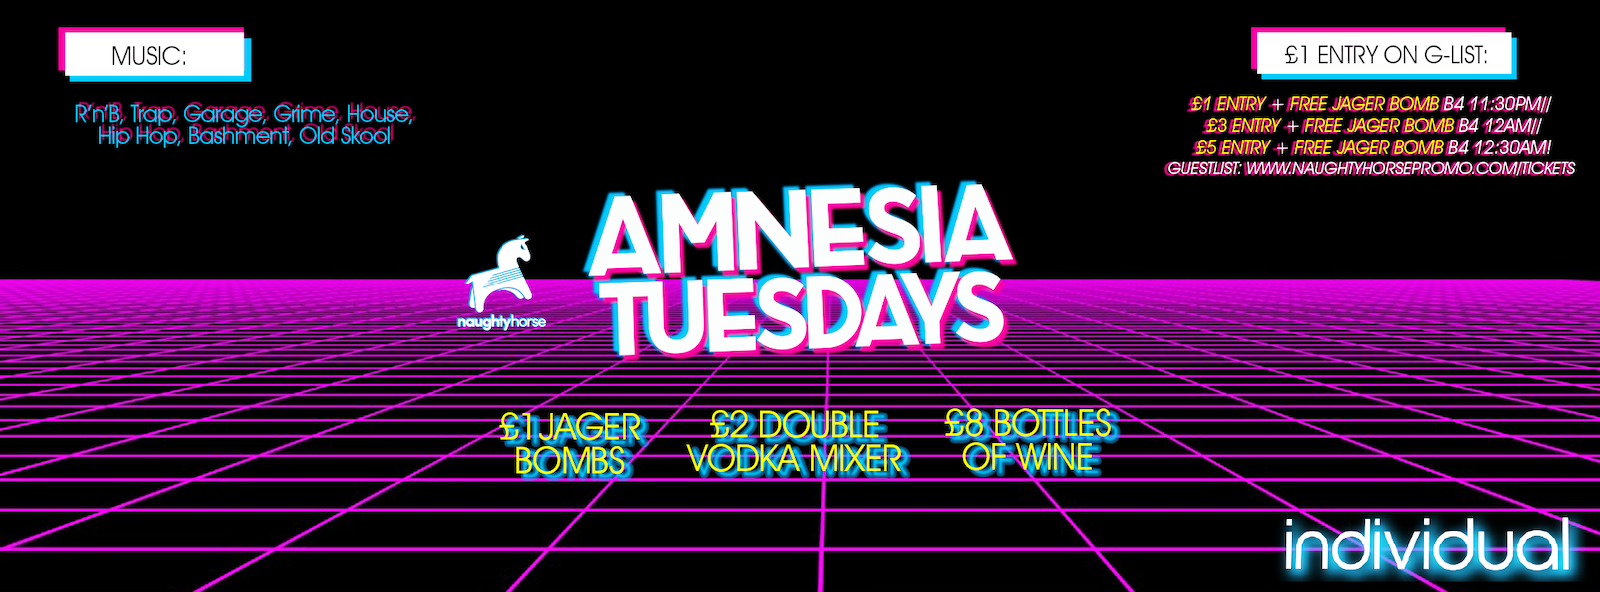 AMNESIA TUESDAYS: MULTI VENUE FRESHERS SPECIAL at Indi + Arcadian Venues TBA – £1 Entry + FREE JAGERBOMB guestlist!